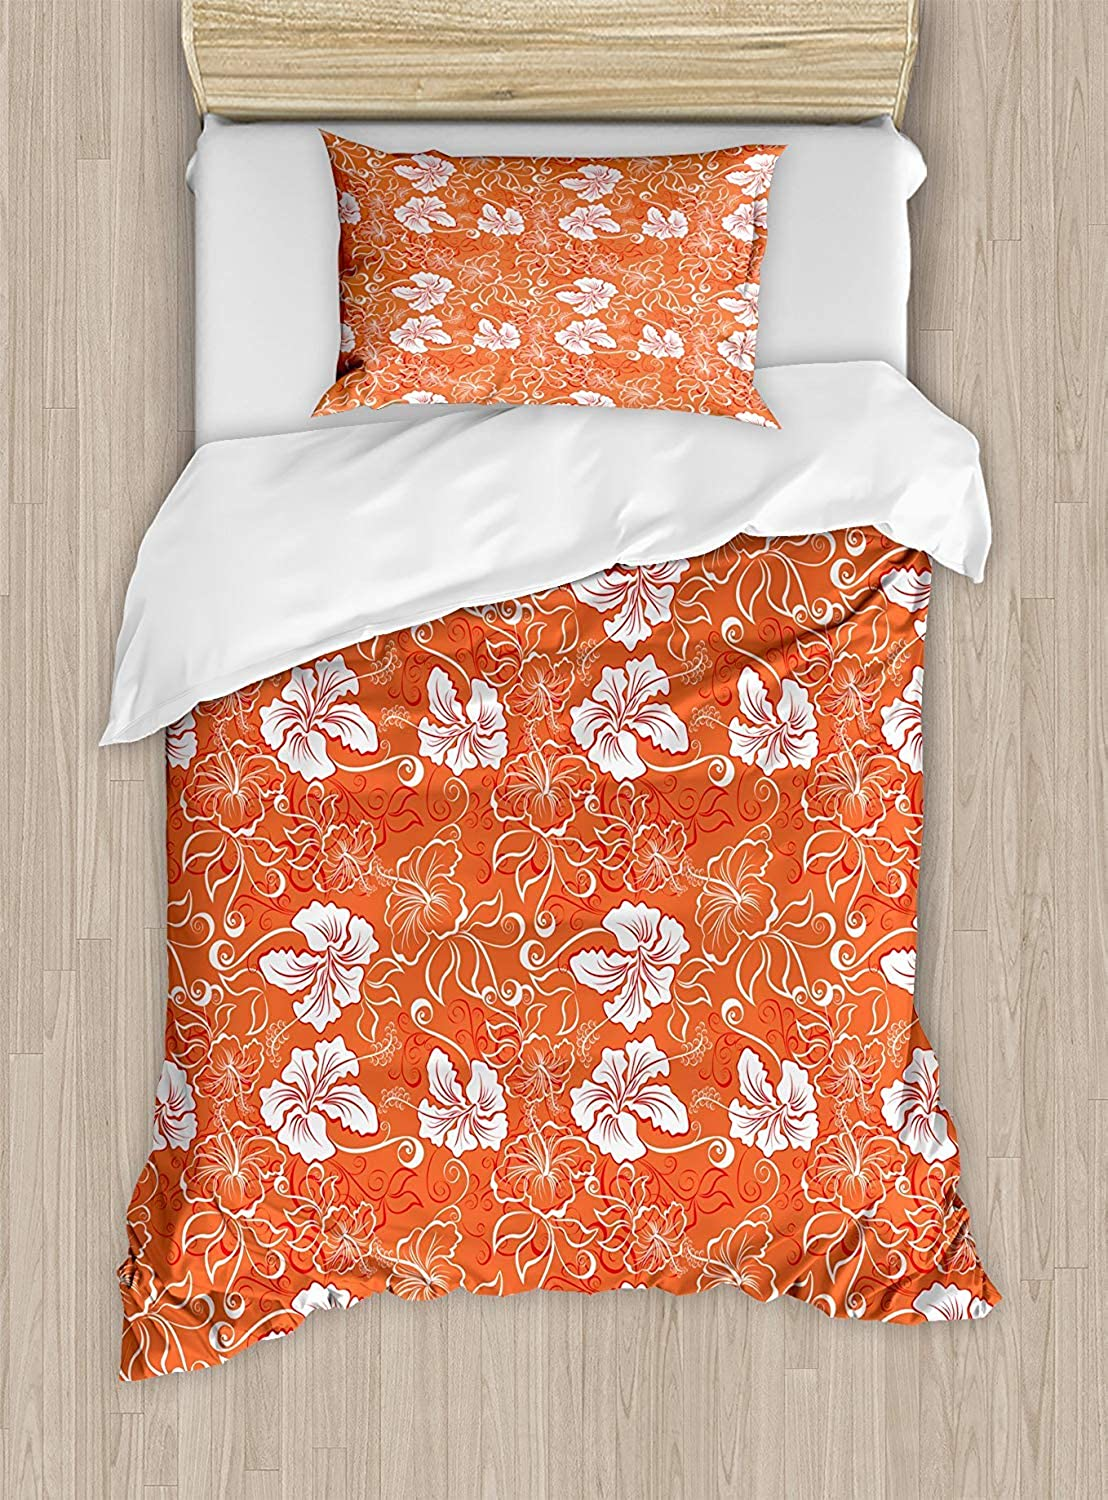 VpinkLVHOME orange Duvet Cover Set Twin Size Hawaiian Pattern with Tropical Climate Hibiscus Flowers Abstract Summer Flourish,Kids Bedding  Double Brushed Microfiber,orange White